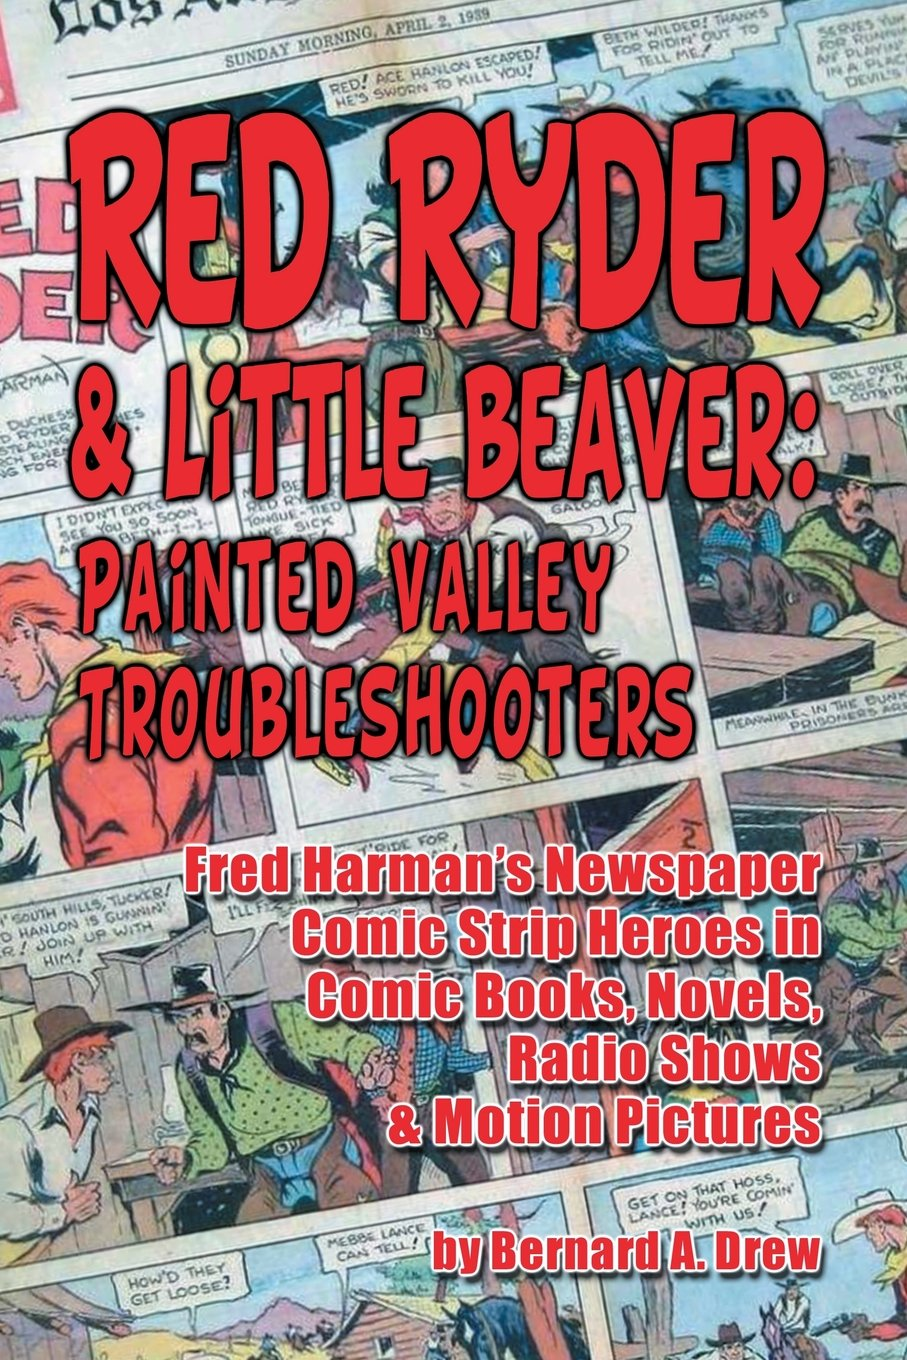 Red Ryder & Little Beaver: Painted Valley Troubleshooters Fred Harman's Newspaper Comic Strip Heroes in Comic Books, Novels, Radio Shows & Motion Pictures